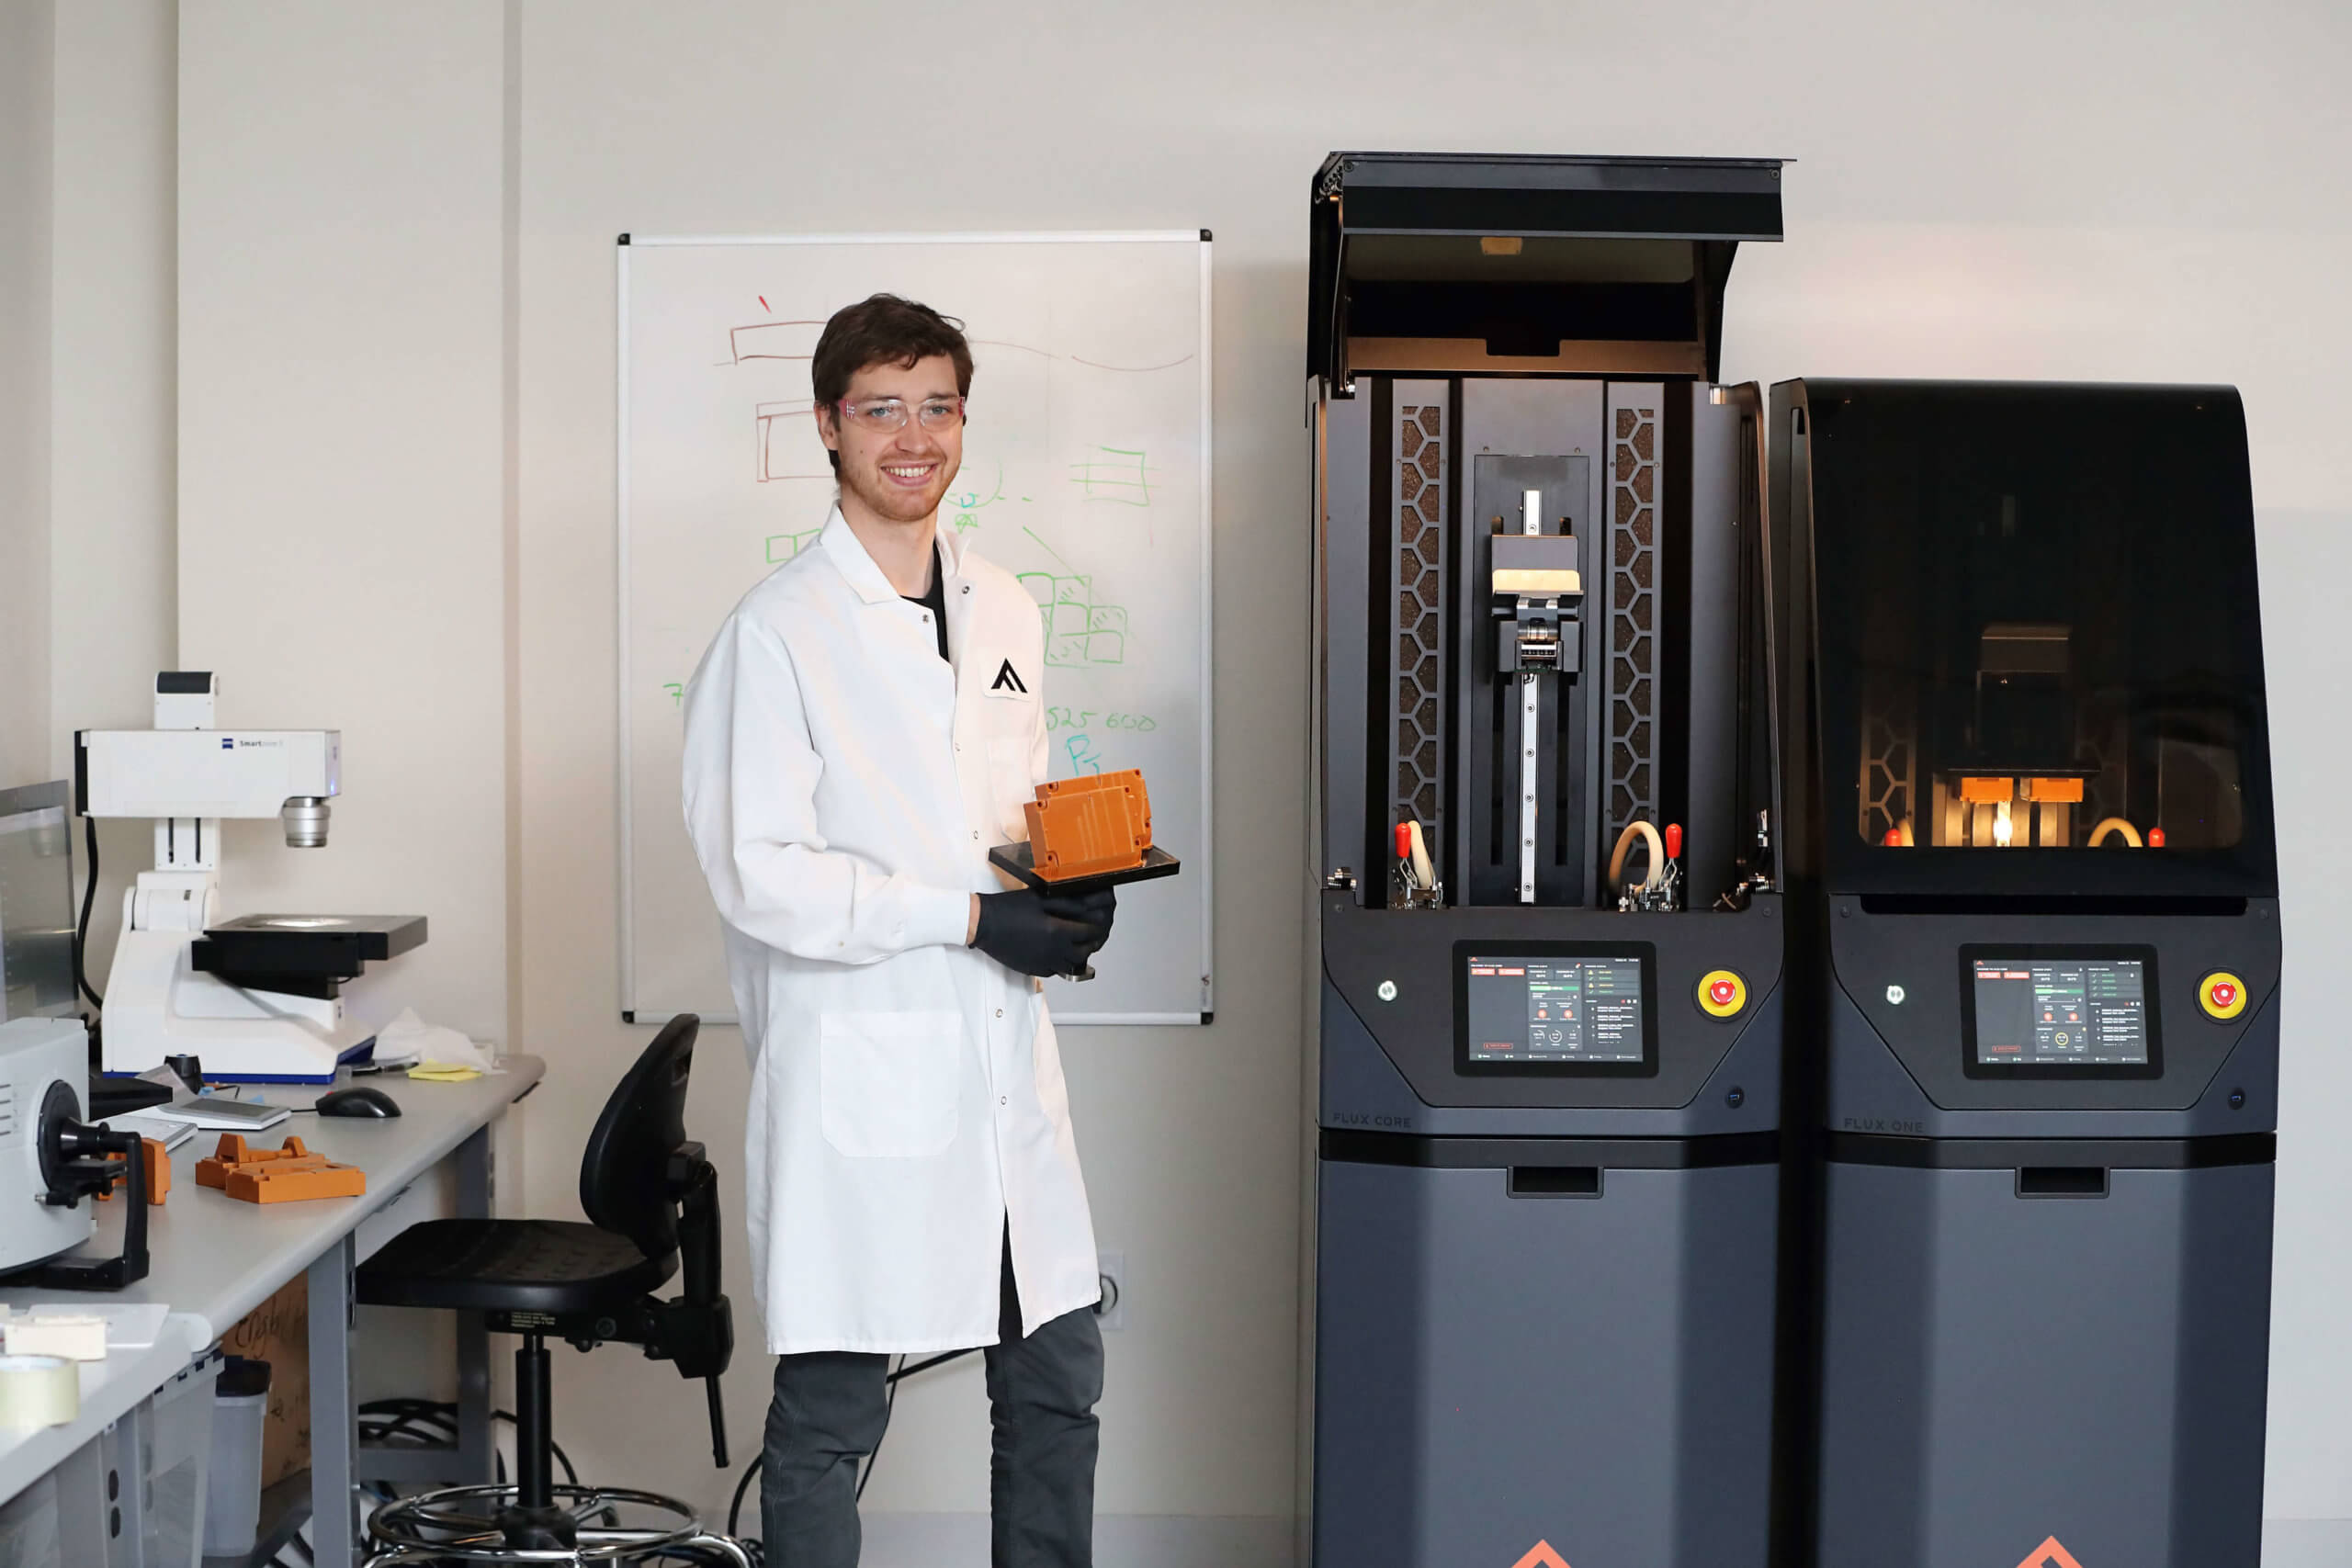 Scott in front of printers in lab